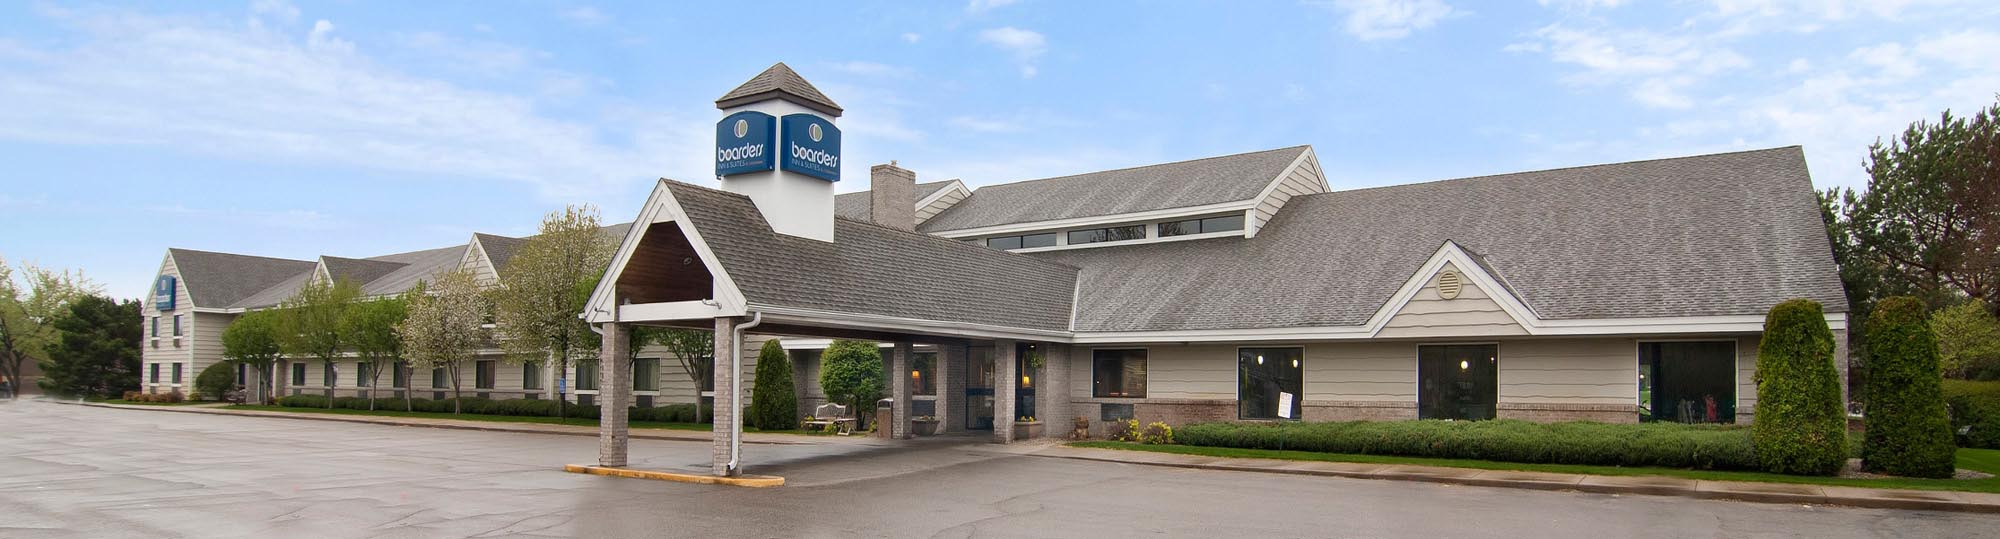 Boarders Inn and Suites in Faribault, Minnesota Hotel